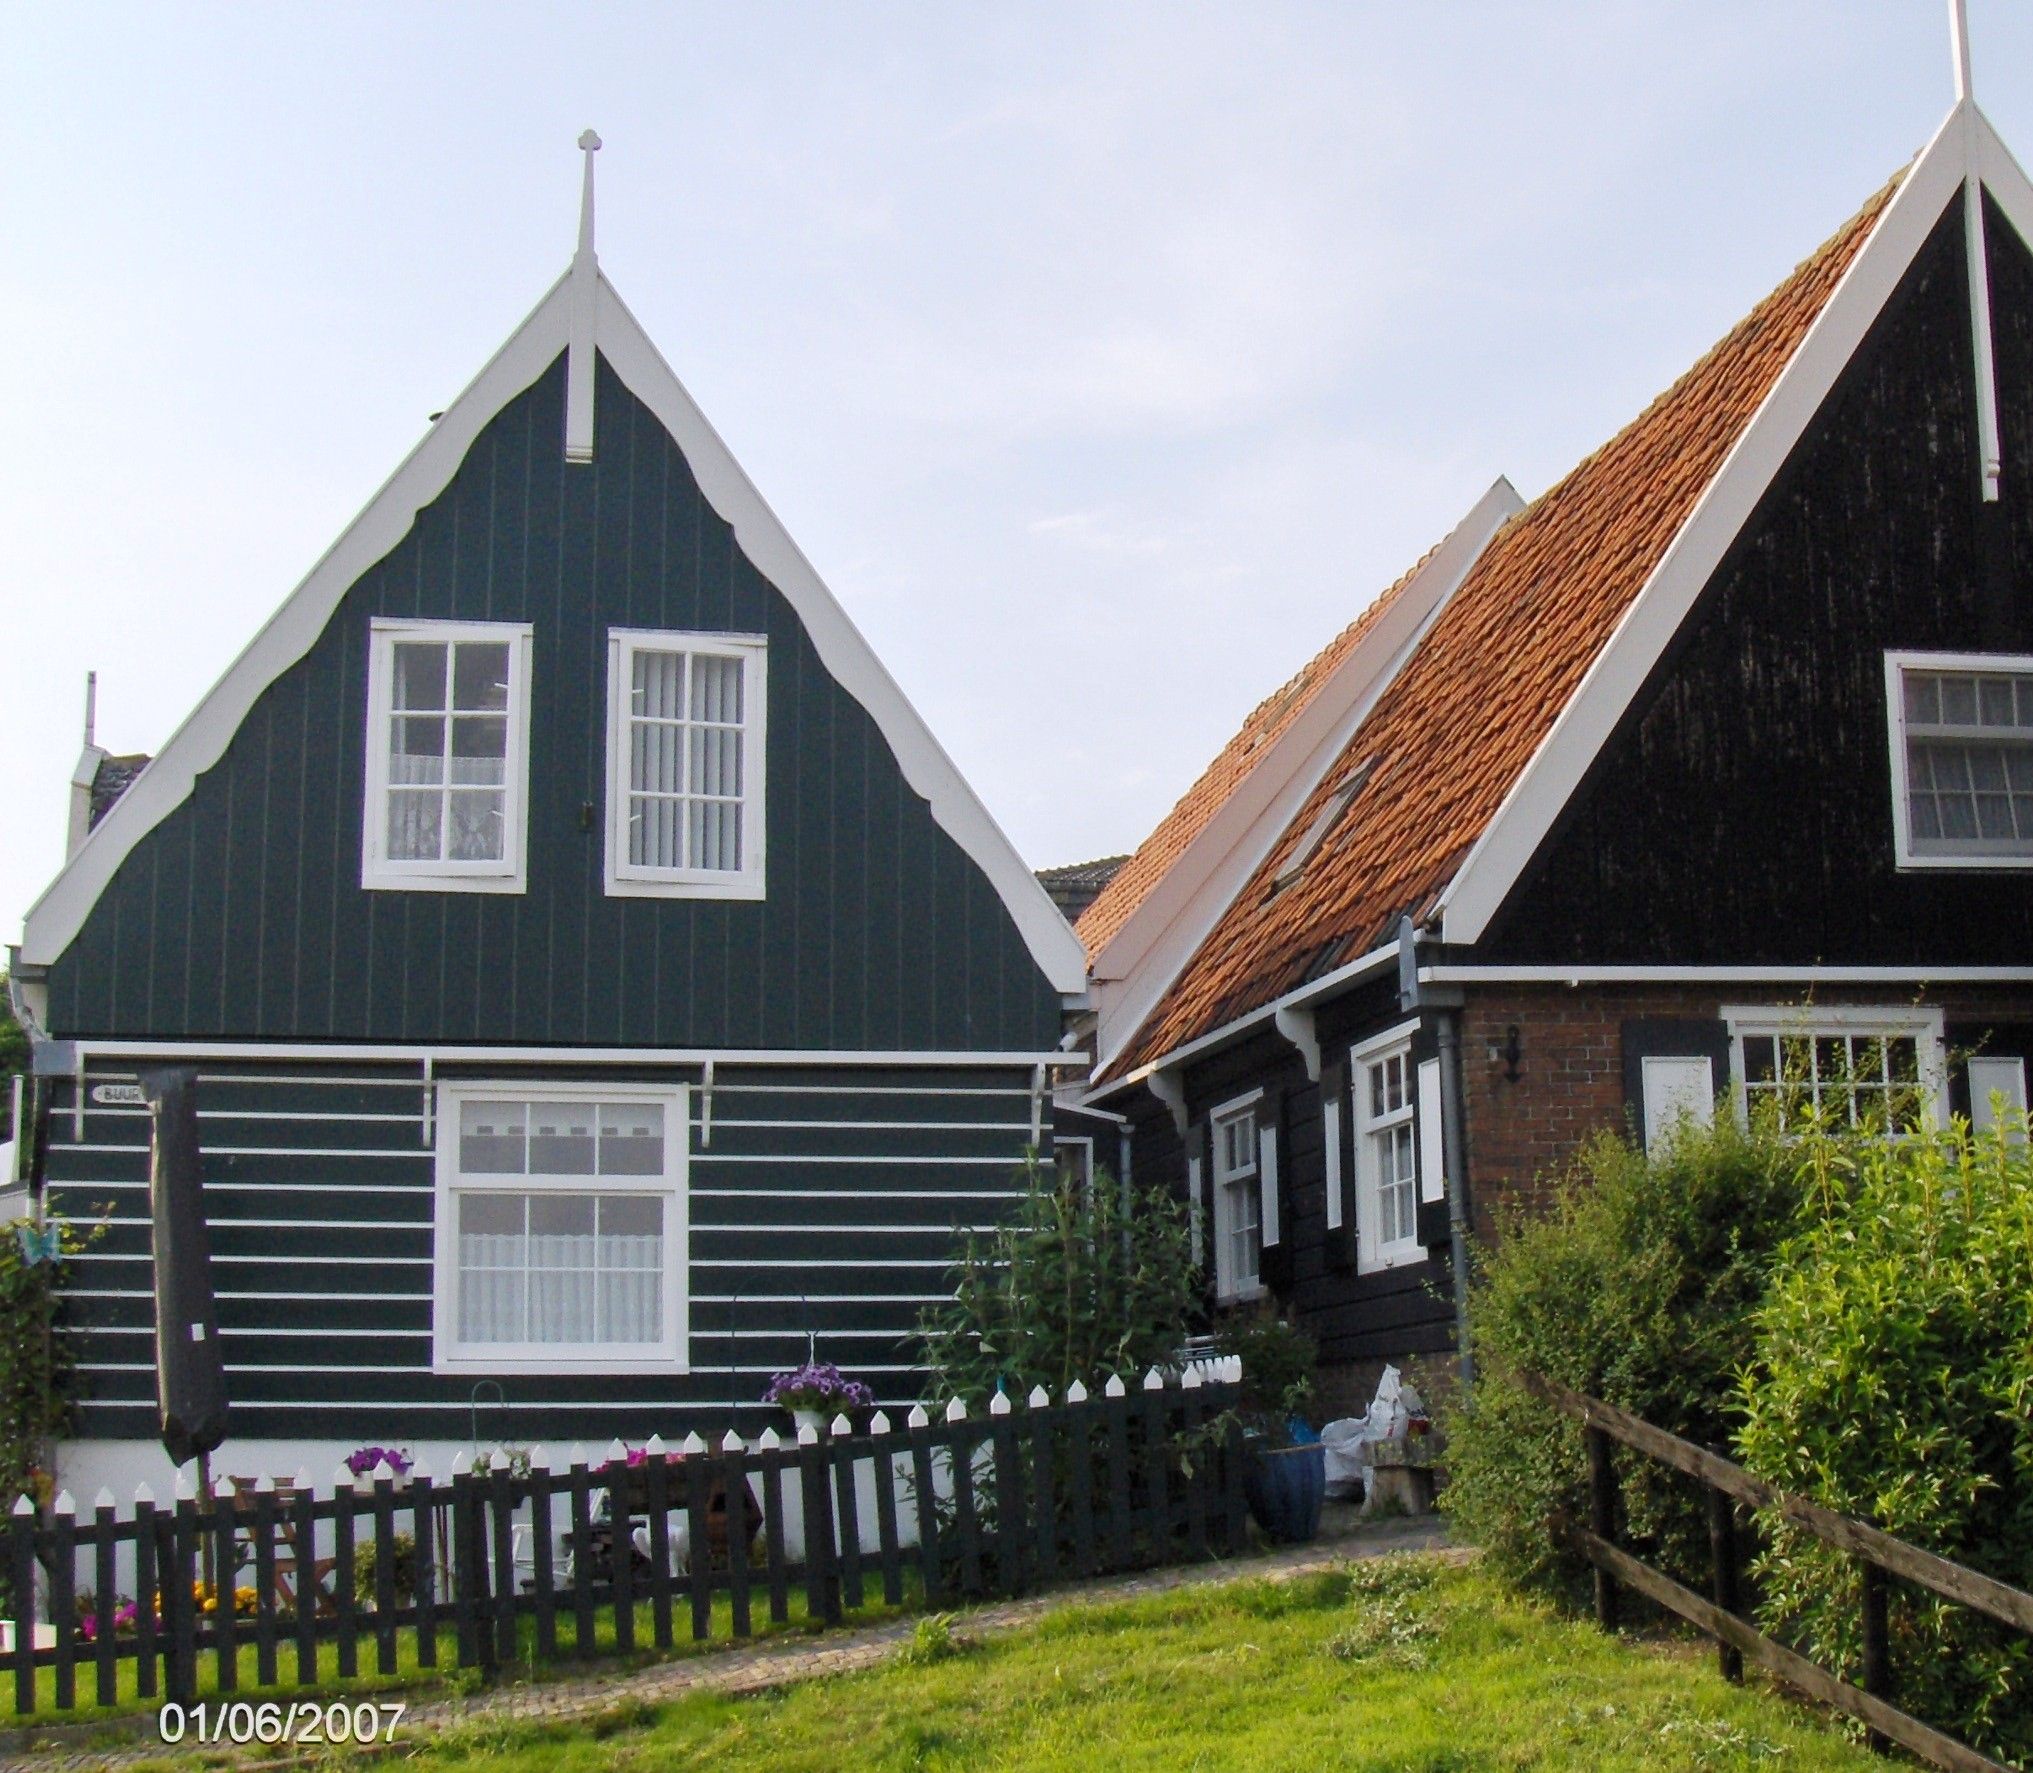 Homes in Mraken, Holland